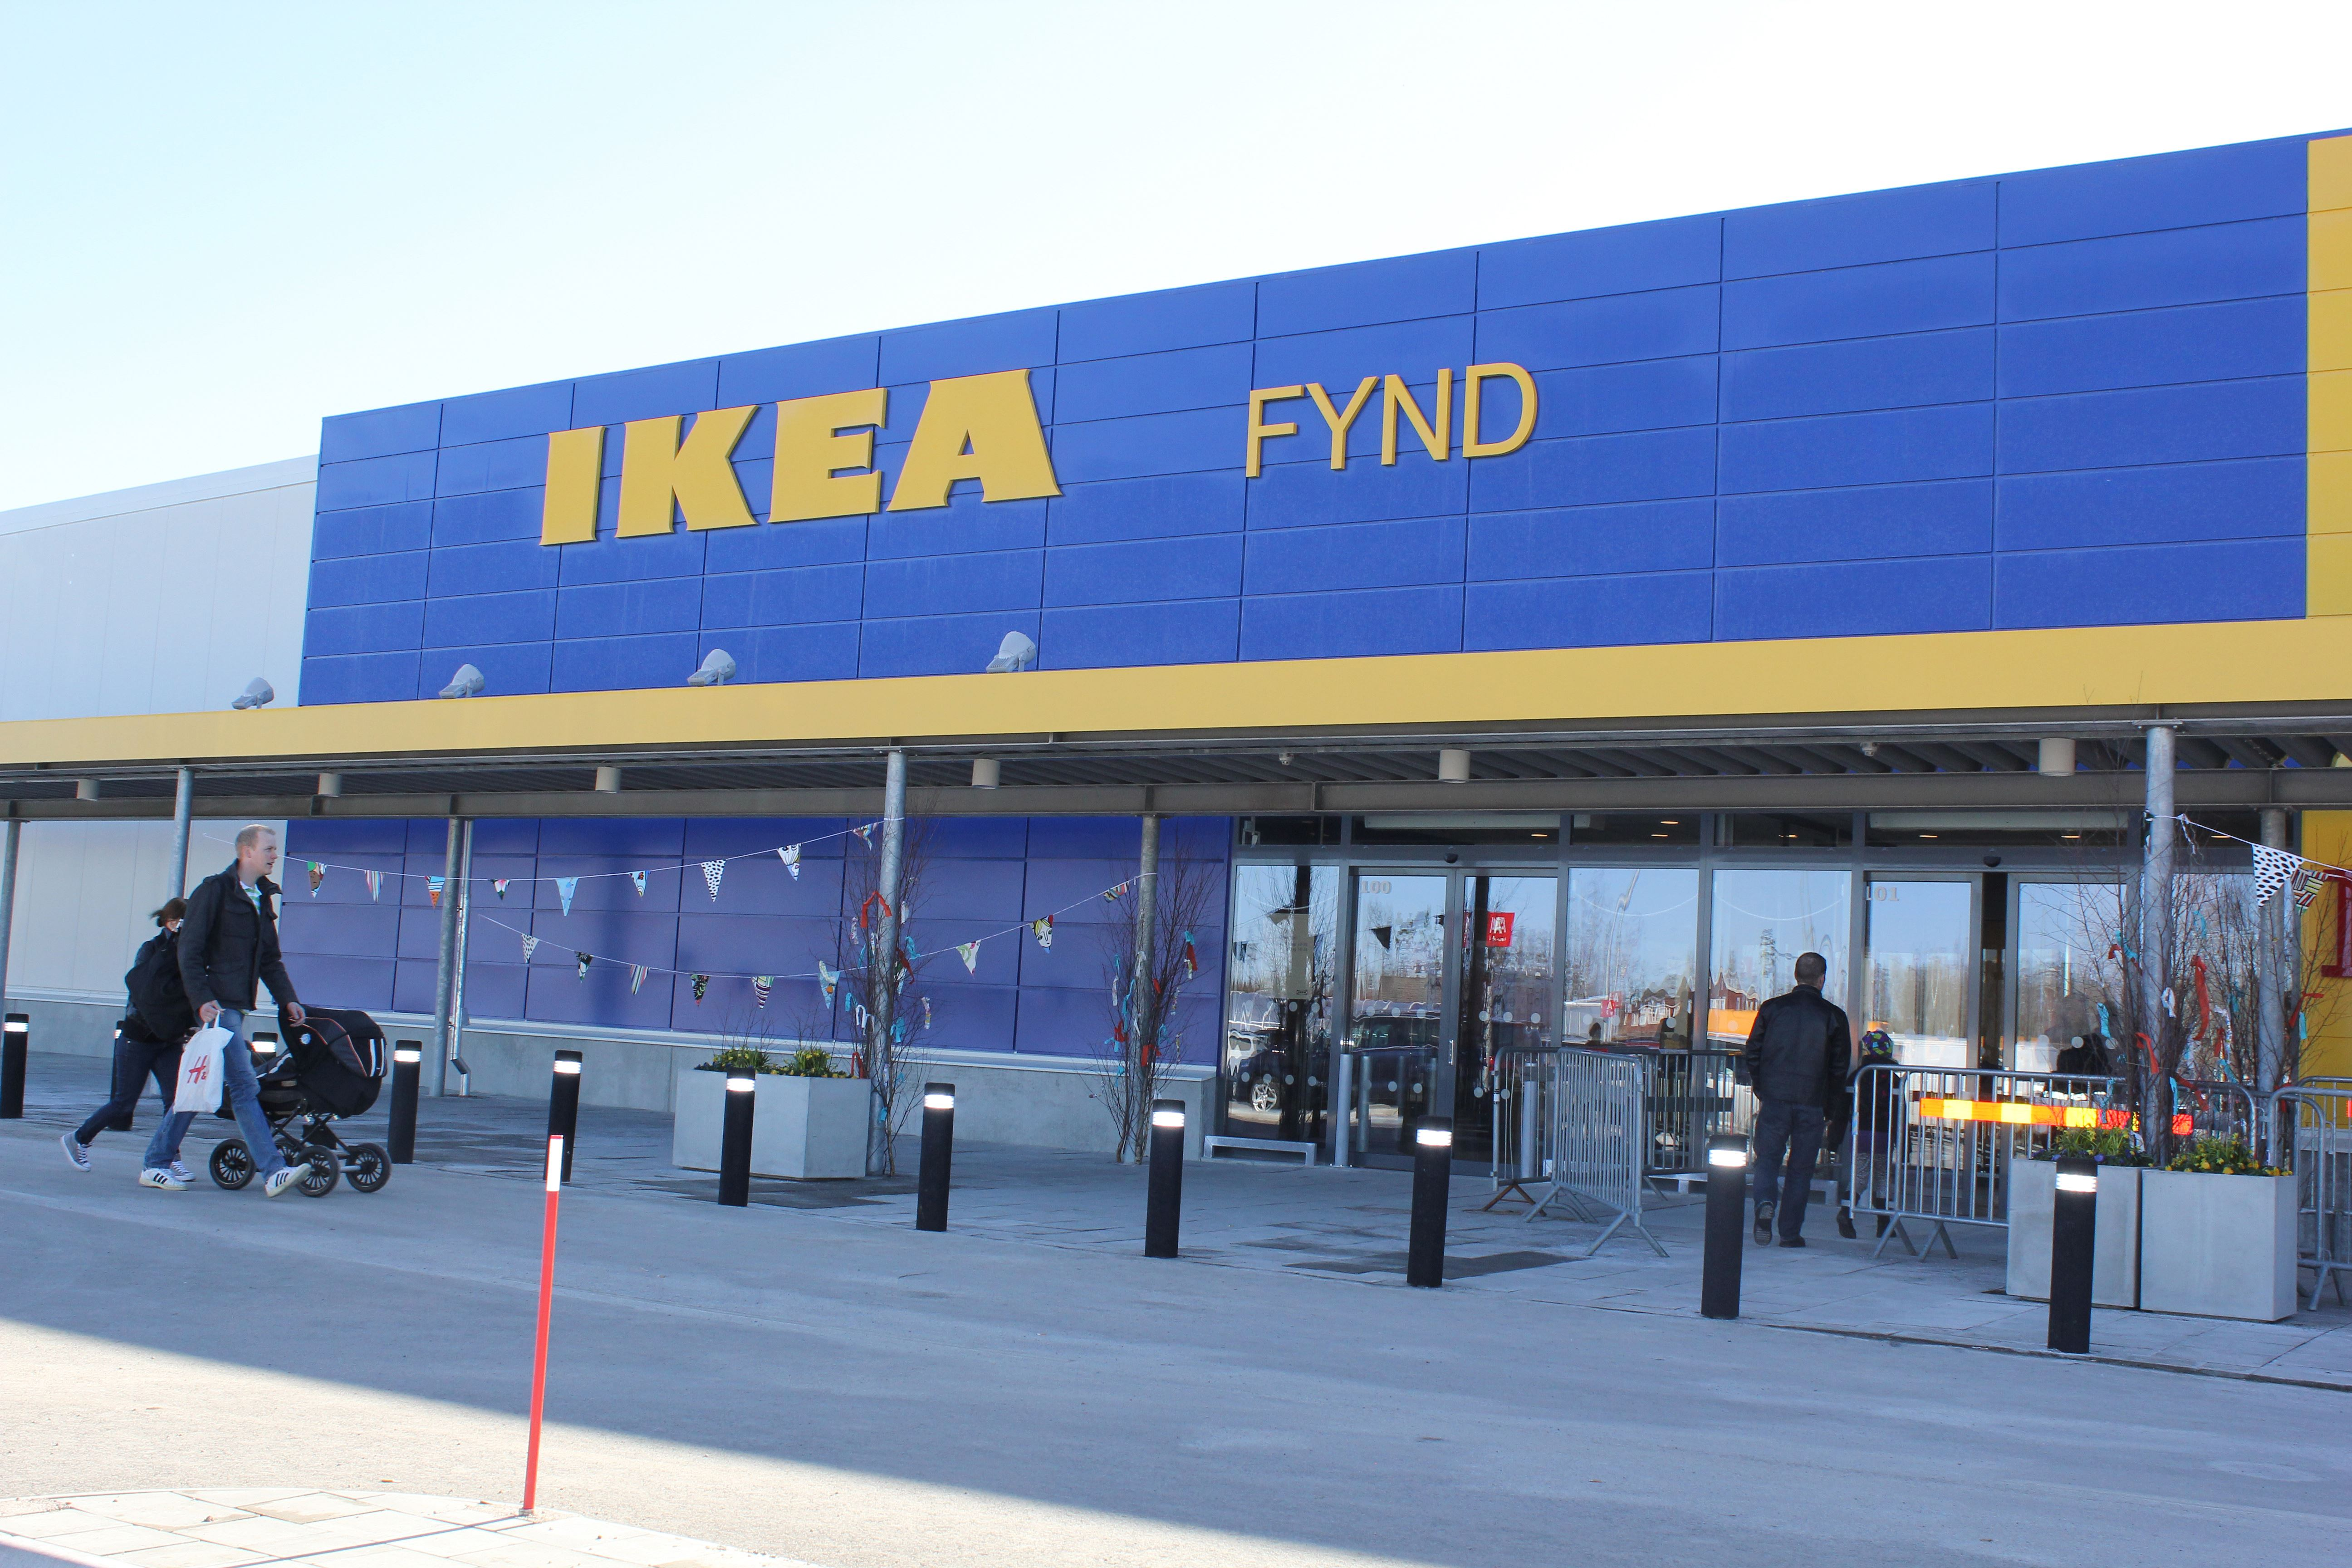 IKEA FYND (Outlet)